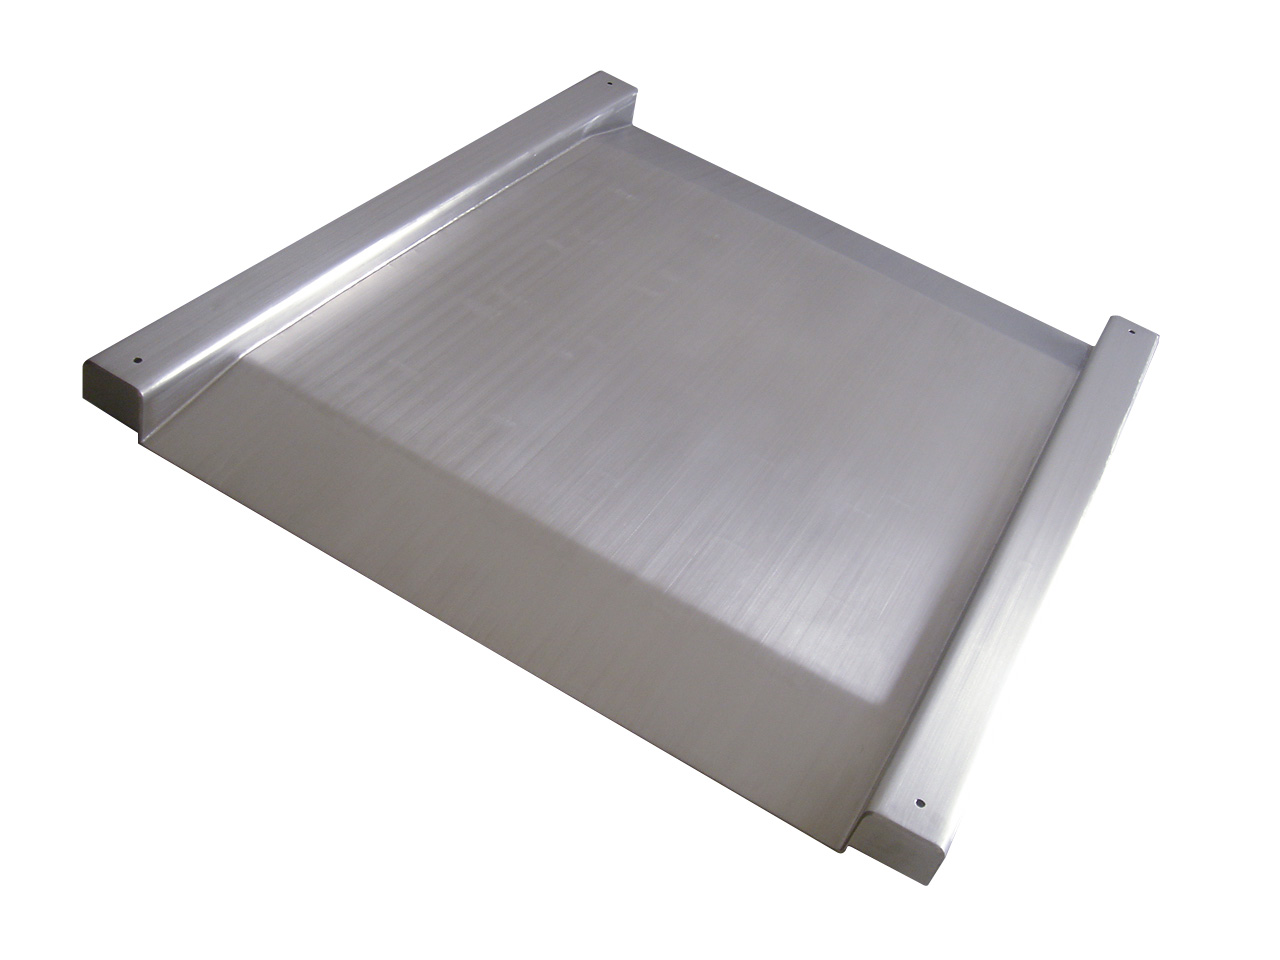 Stainless steel floor scale/ loadometer/ platform scale